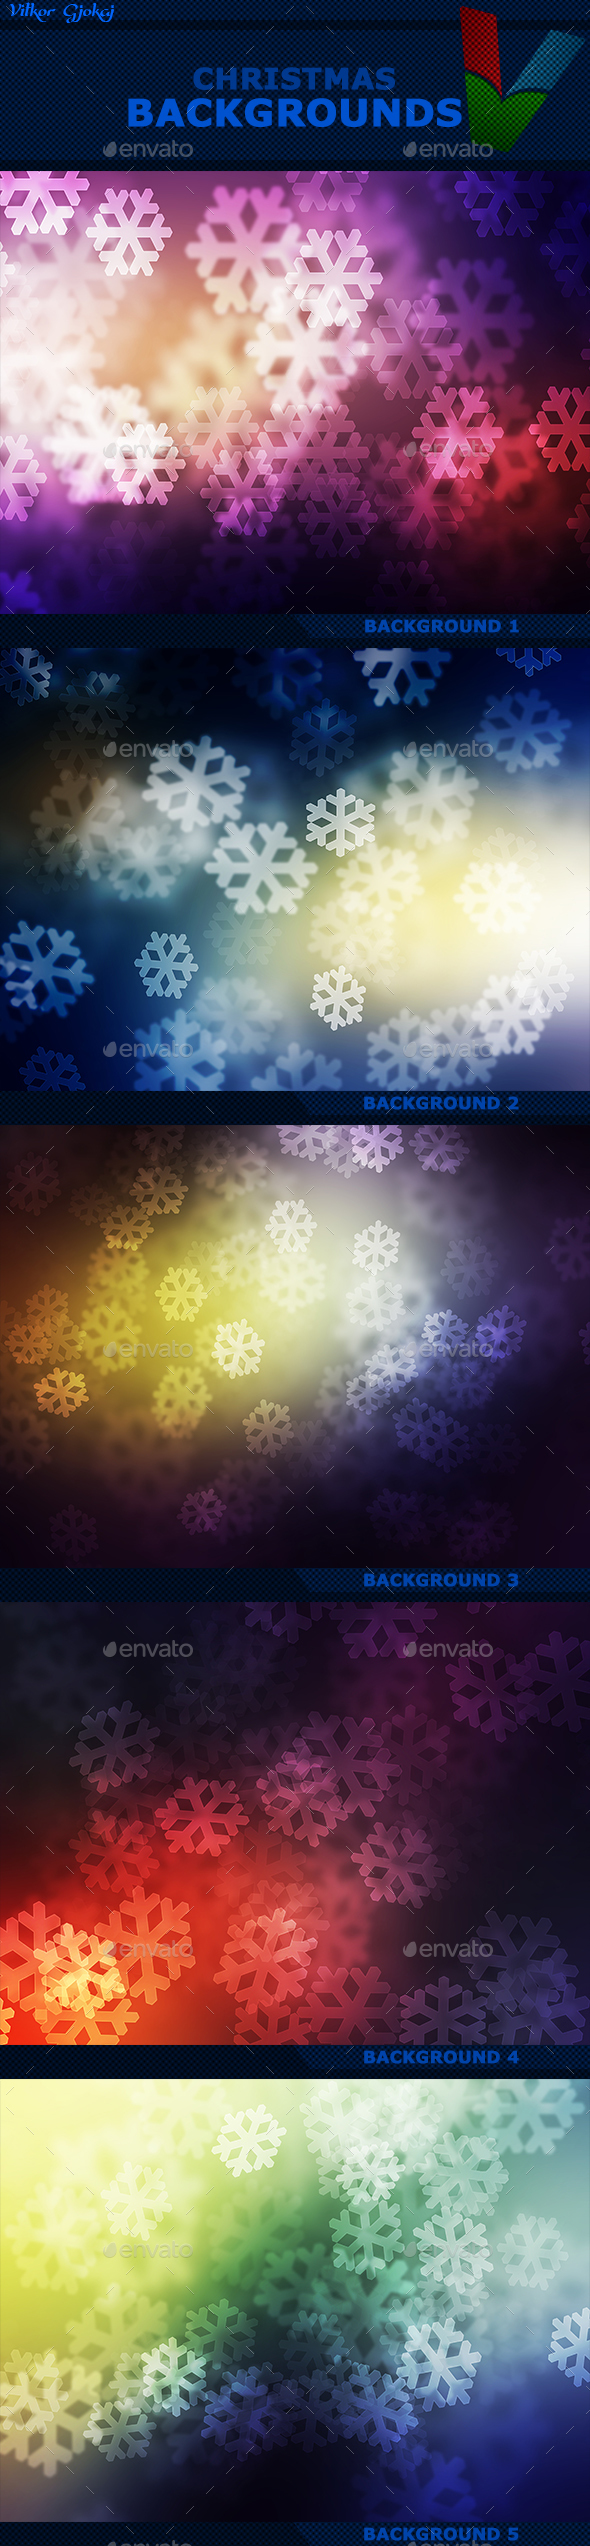 Christmas Backgrounds - Abstract Backgrounds